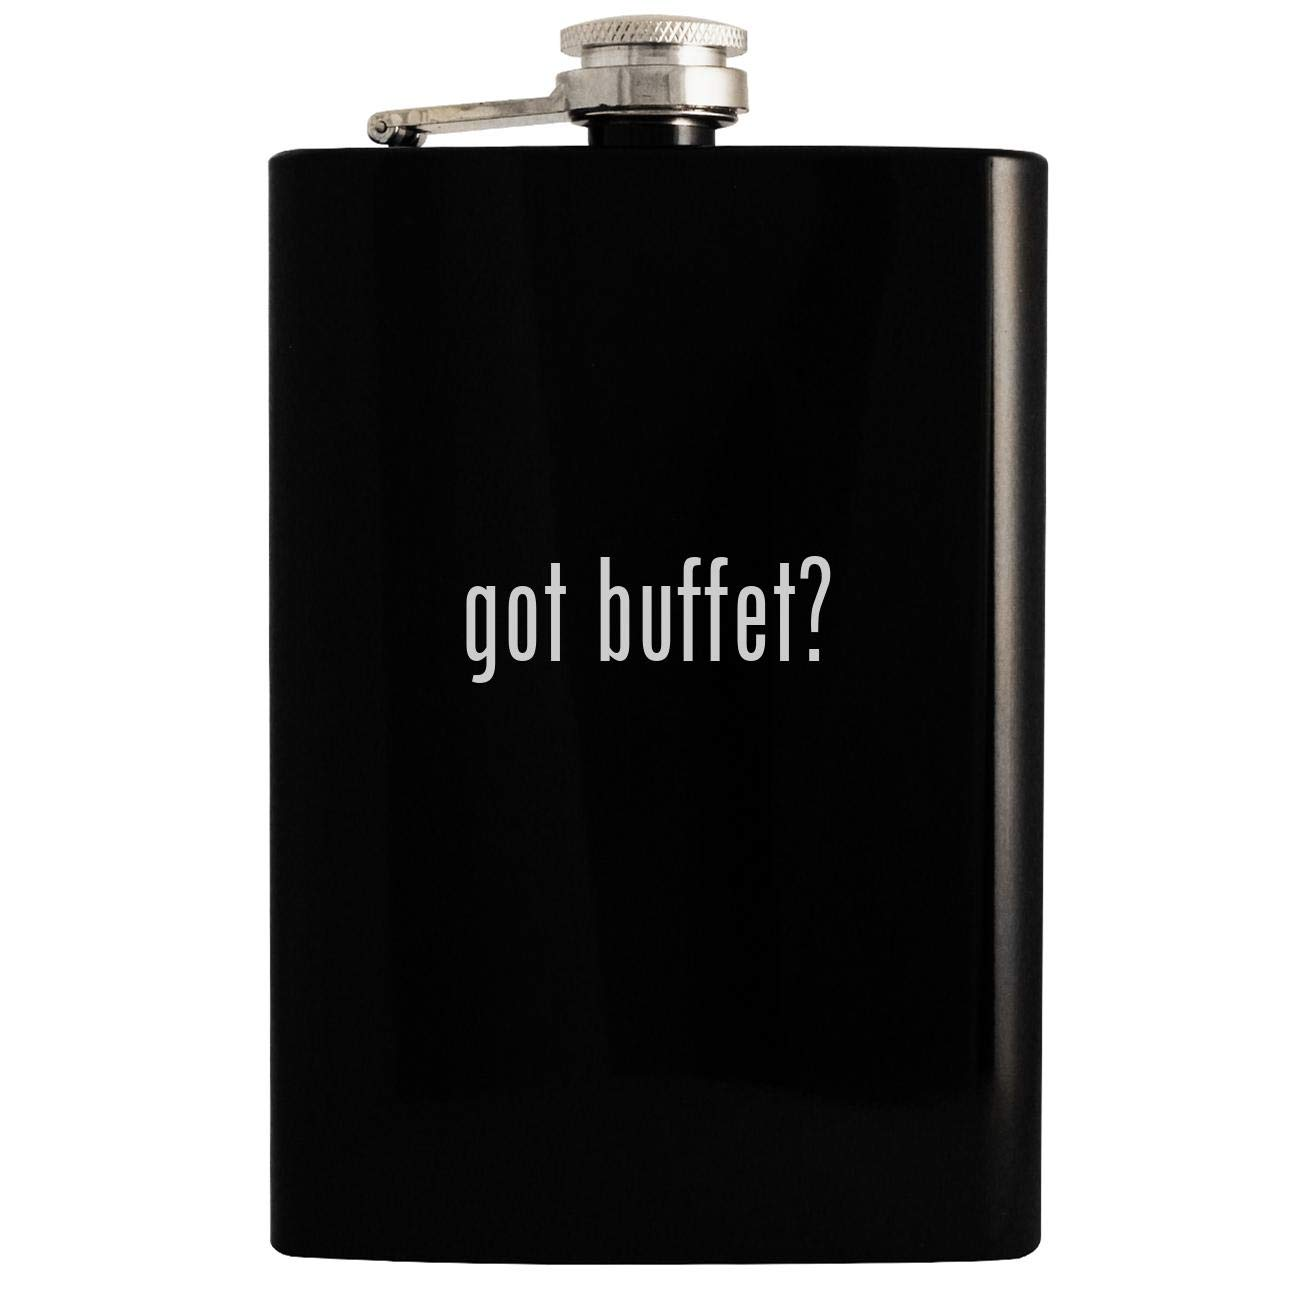 got buffet? - Black 8oz Hip Drinking Alcohol Flask